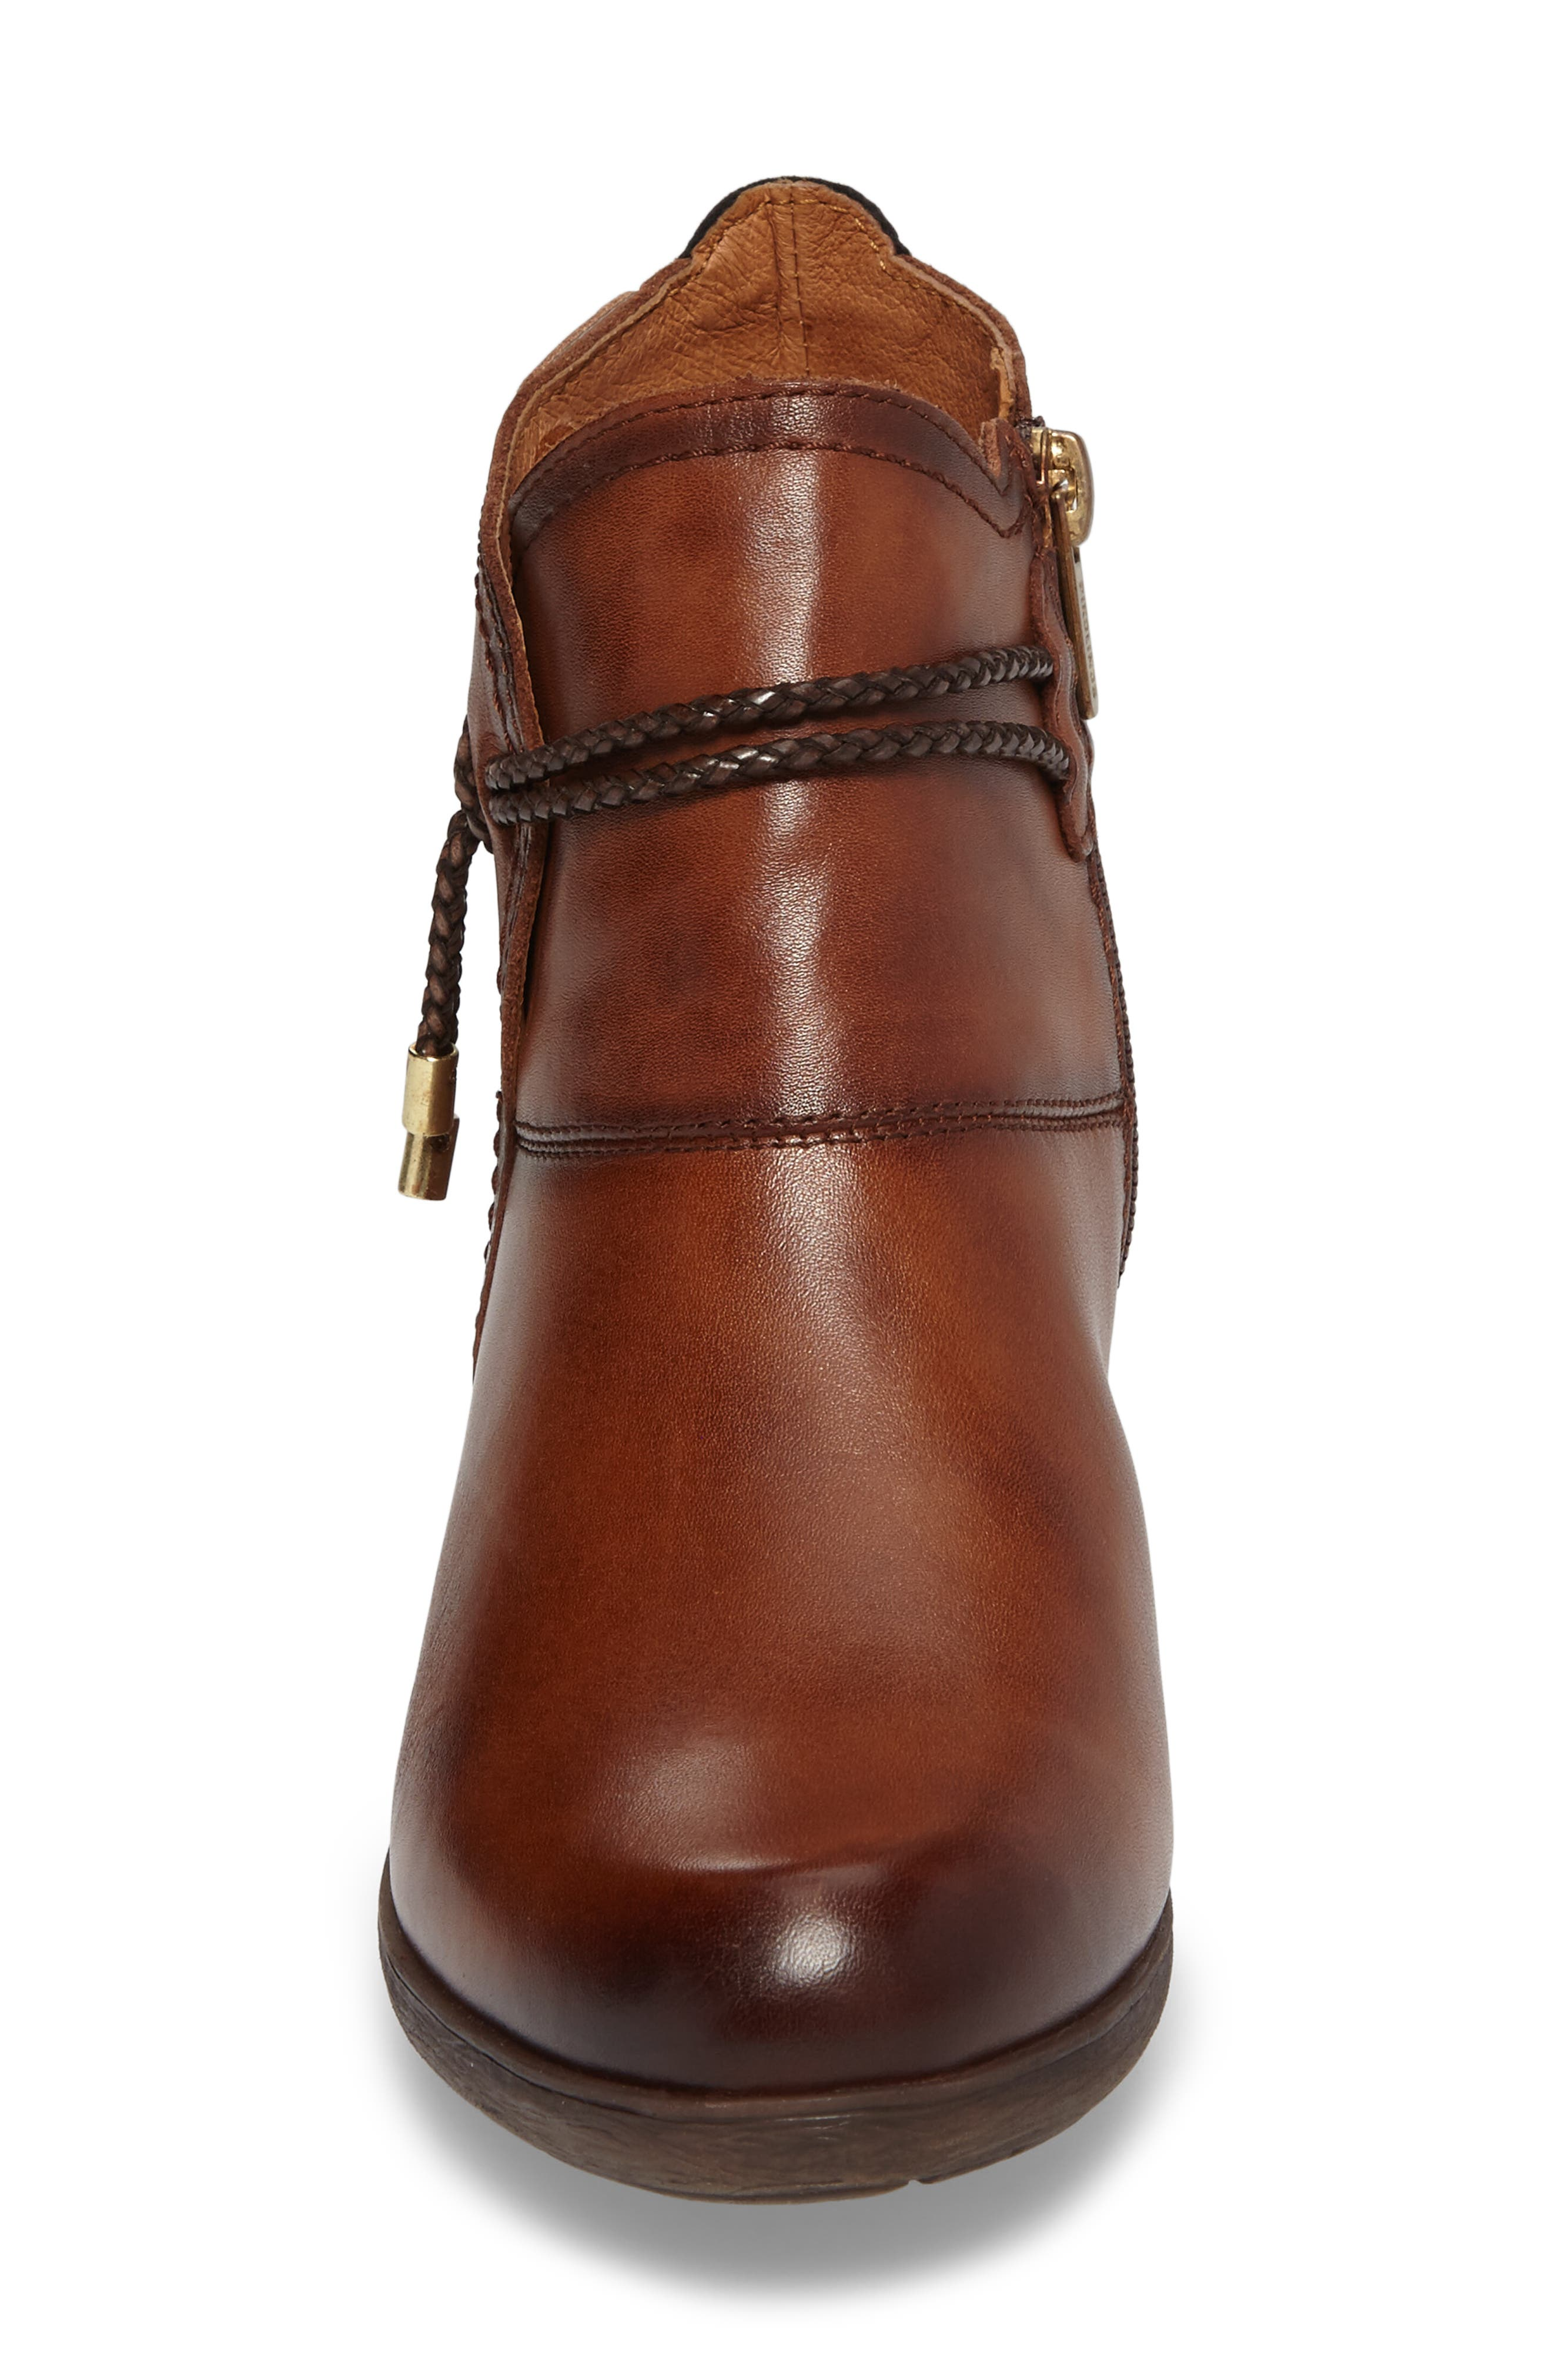 'Rotterdam' Braid Strap Bootie,                             Alternate thumbnail 4, color,                             CUERO BROWN OLMO LEATHER